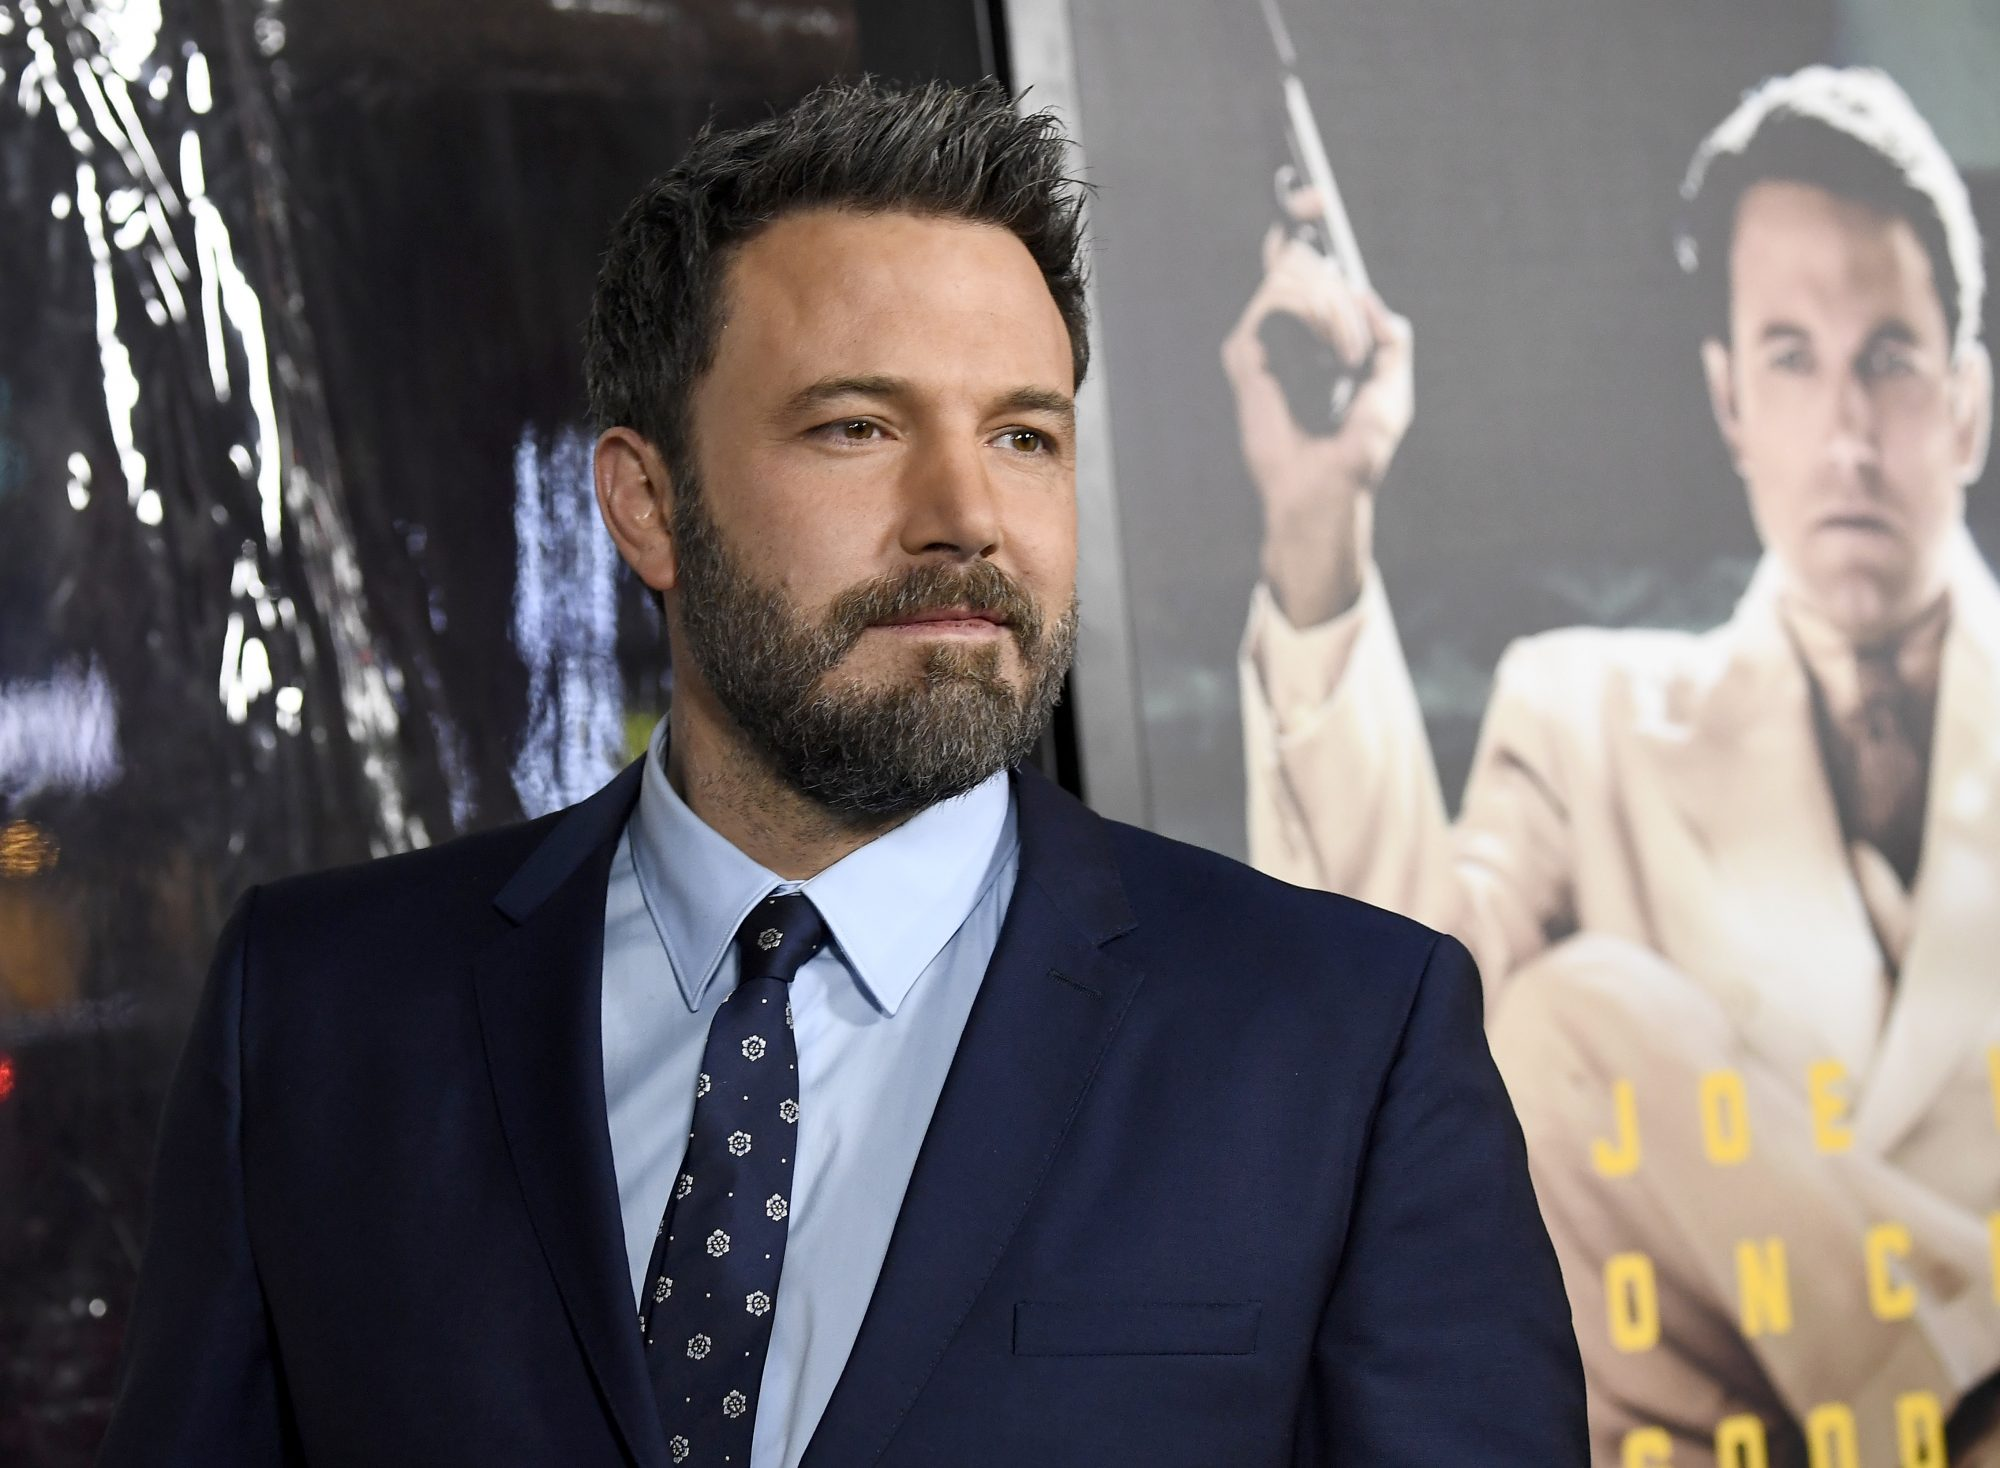 05-ben-affleck-celebrity-addiction